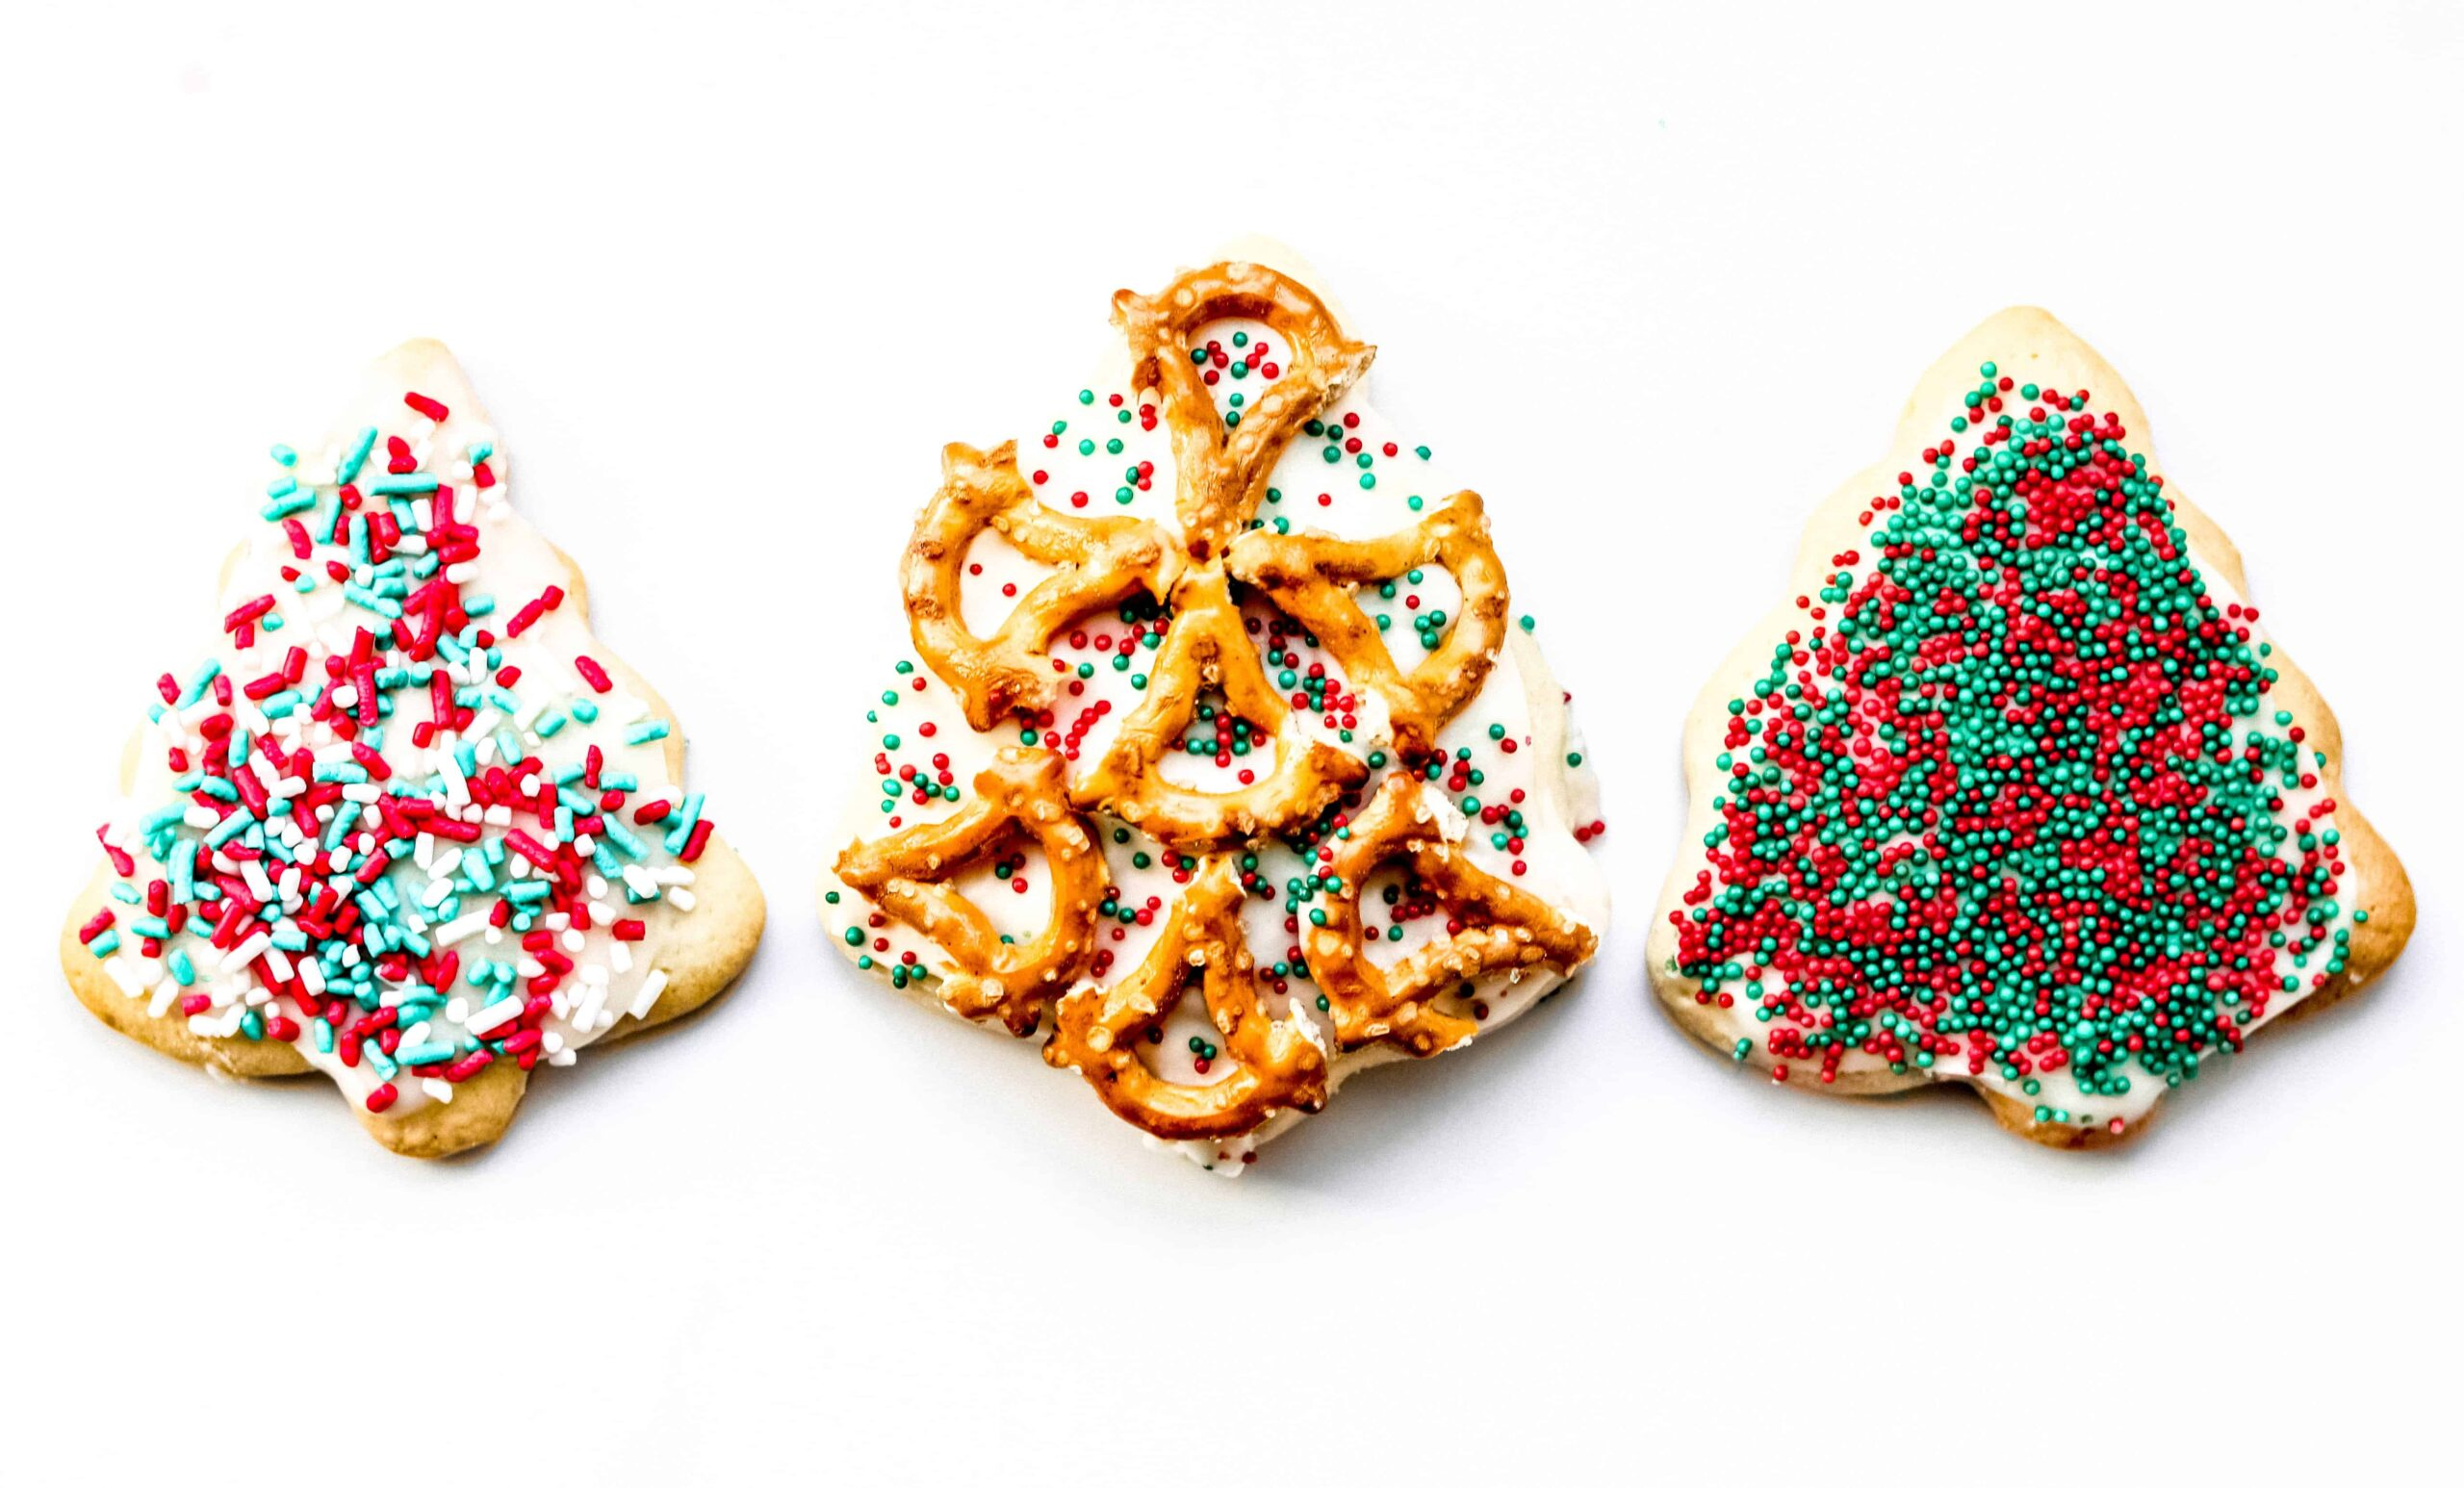 The Best Sugar Cookie Recipe - Holiday Cutouts + Just for Fun! @shawsimpleswaps #bestsugarcookie #sugarcookie #cookiecutouts